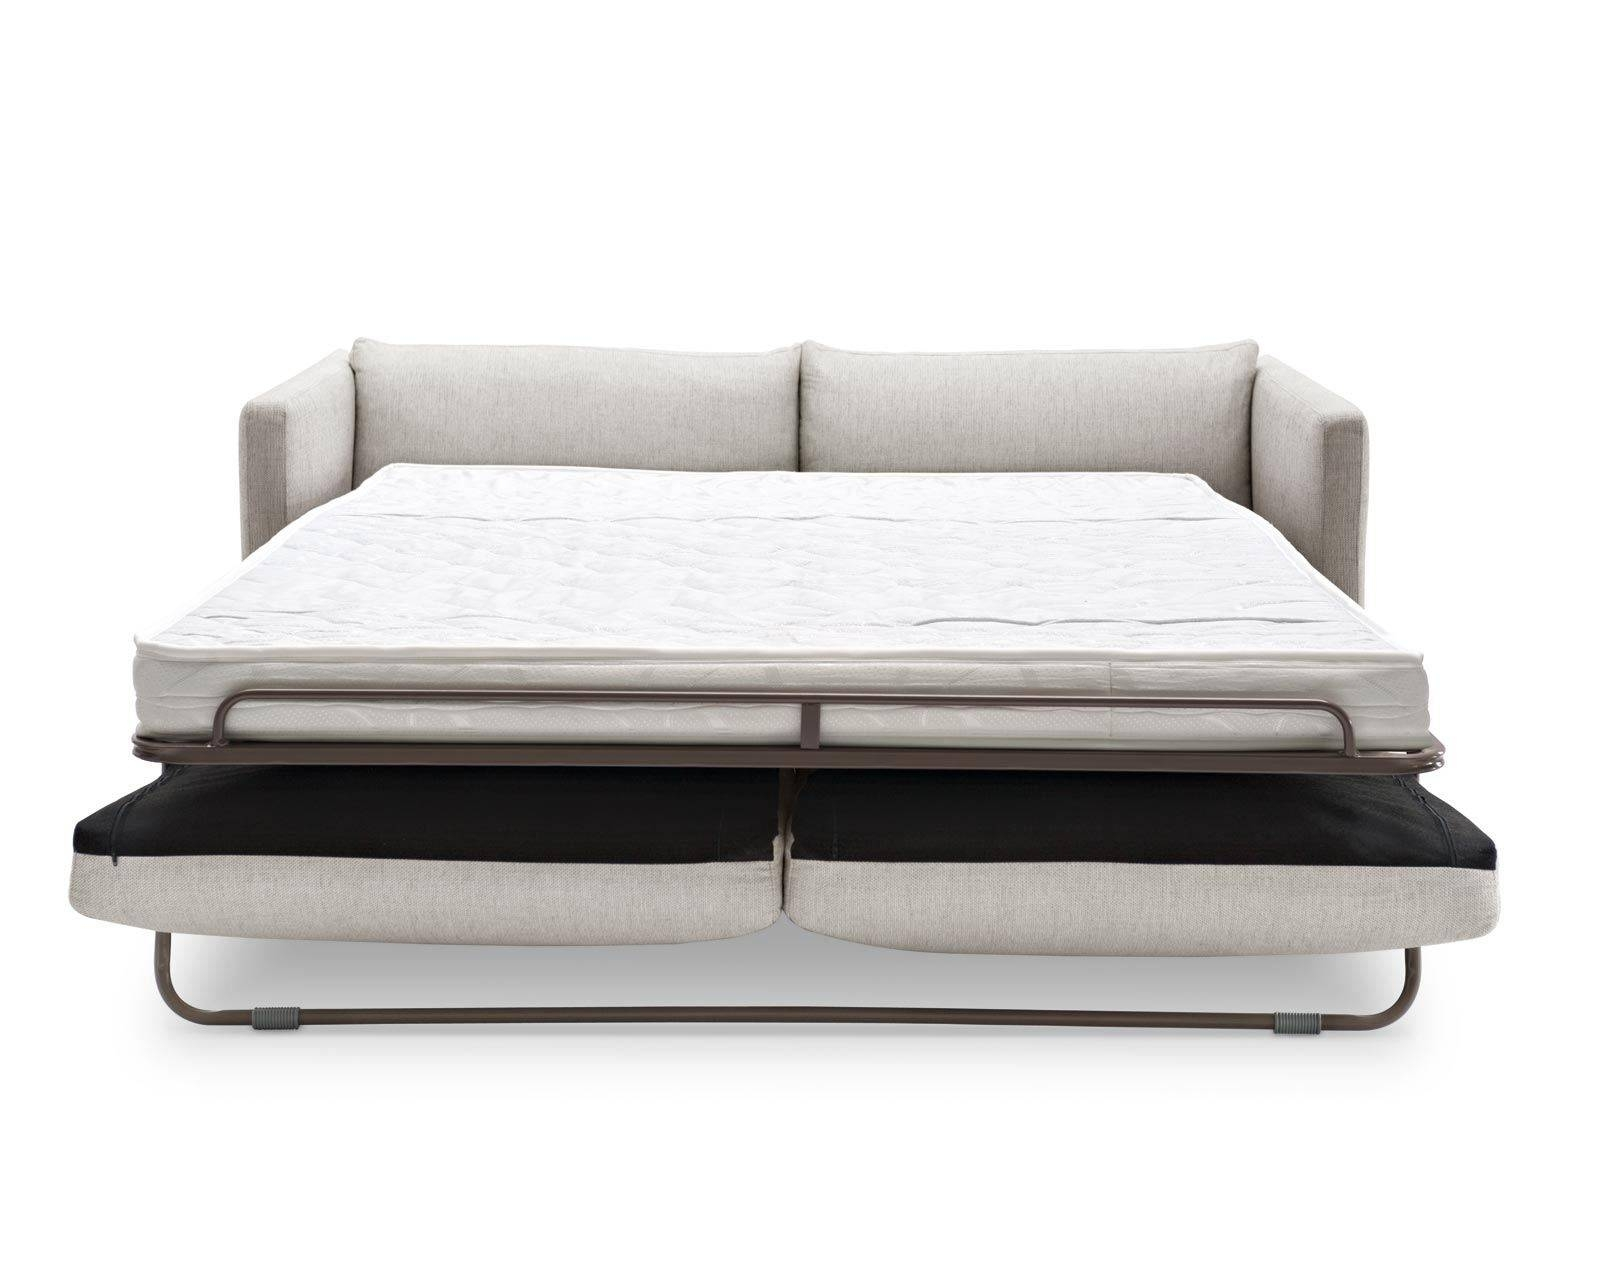 Furniture: Big Choice Of Styles And Colors Futon Beds Ikea For With Regard To Sofa Sleepers Queen Size (View 6 of 30)